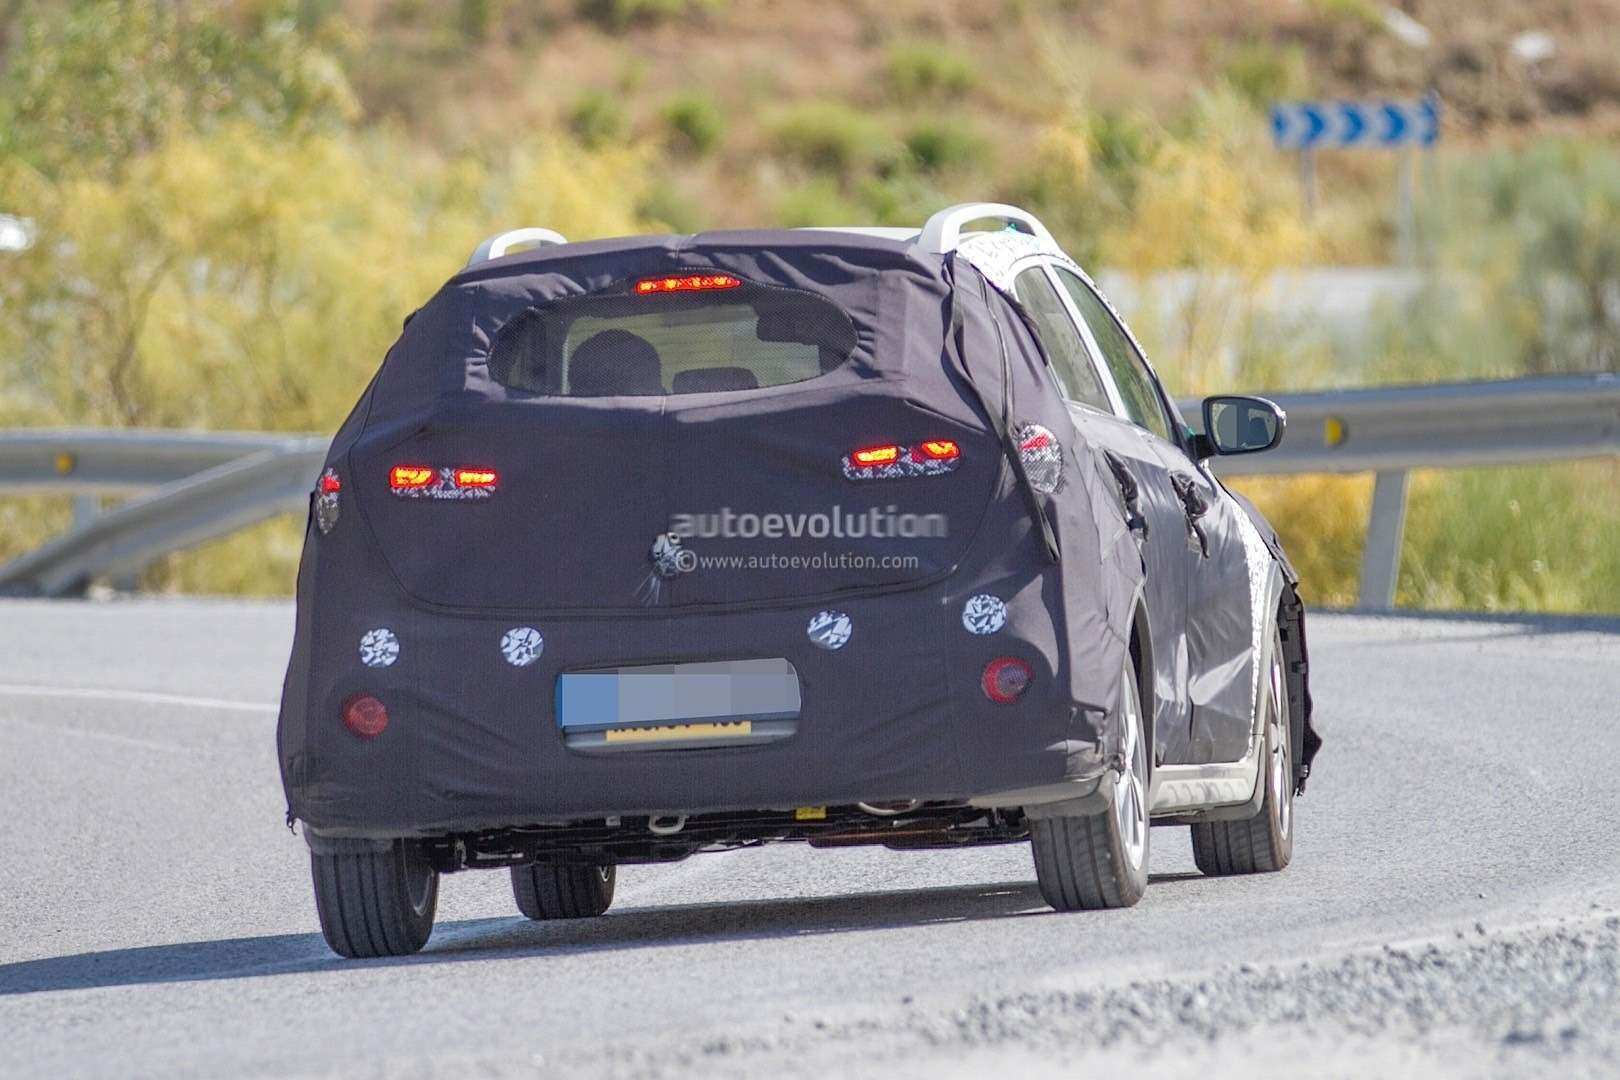 hyundai-i20-cross-test-mule-spotted-in-southern-europe-it-might-become-a-global-model-photo-gallery_7